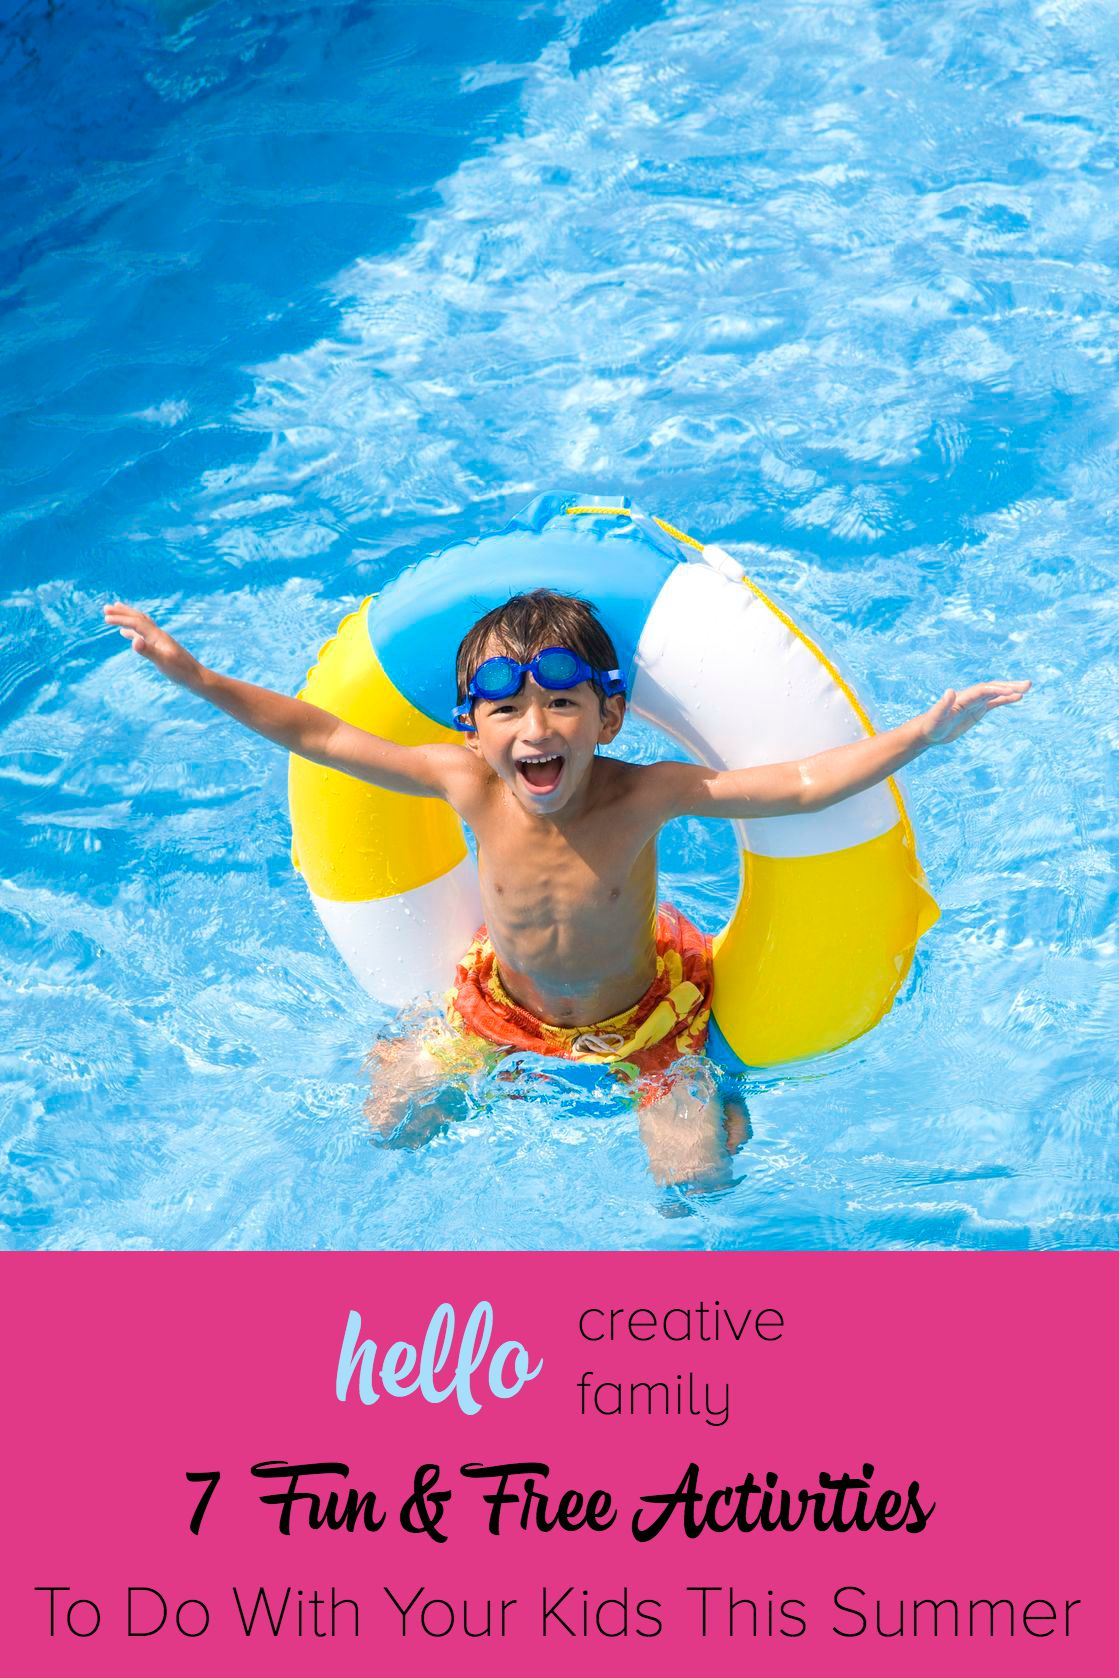 Looking for ways to spend your summer days with the kids Here are 7 Fun and Free Activities To Do With Your Kids This Summer on Hello Creative Family.com